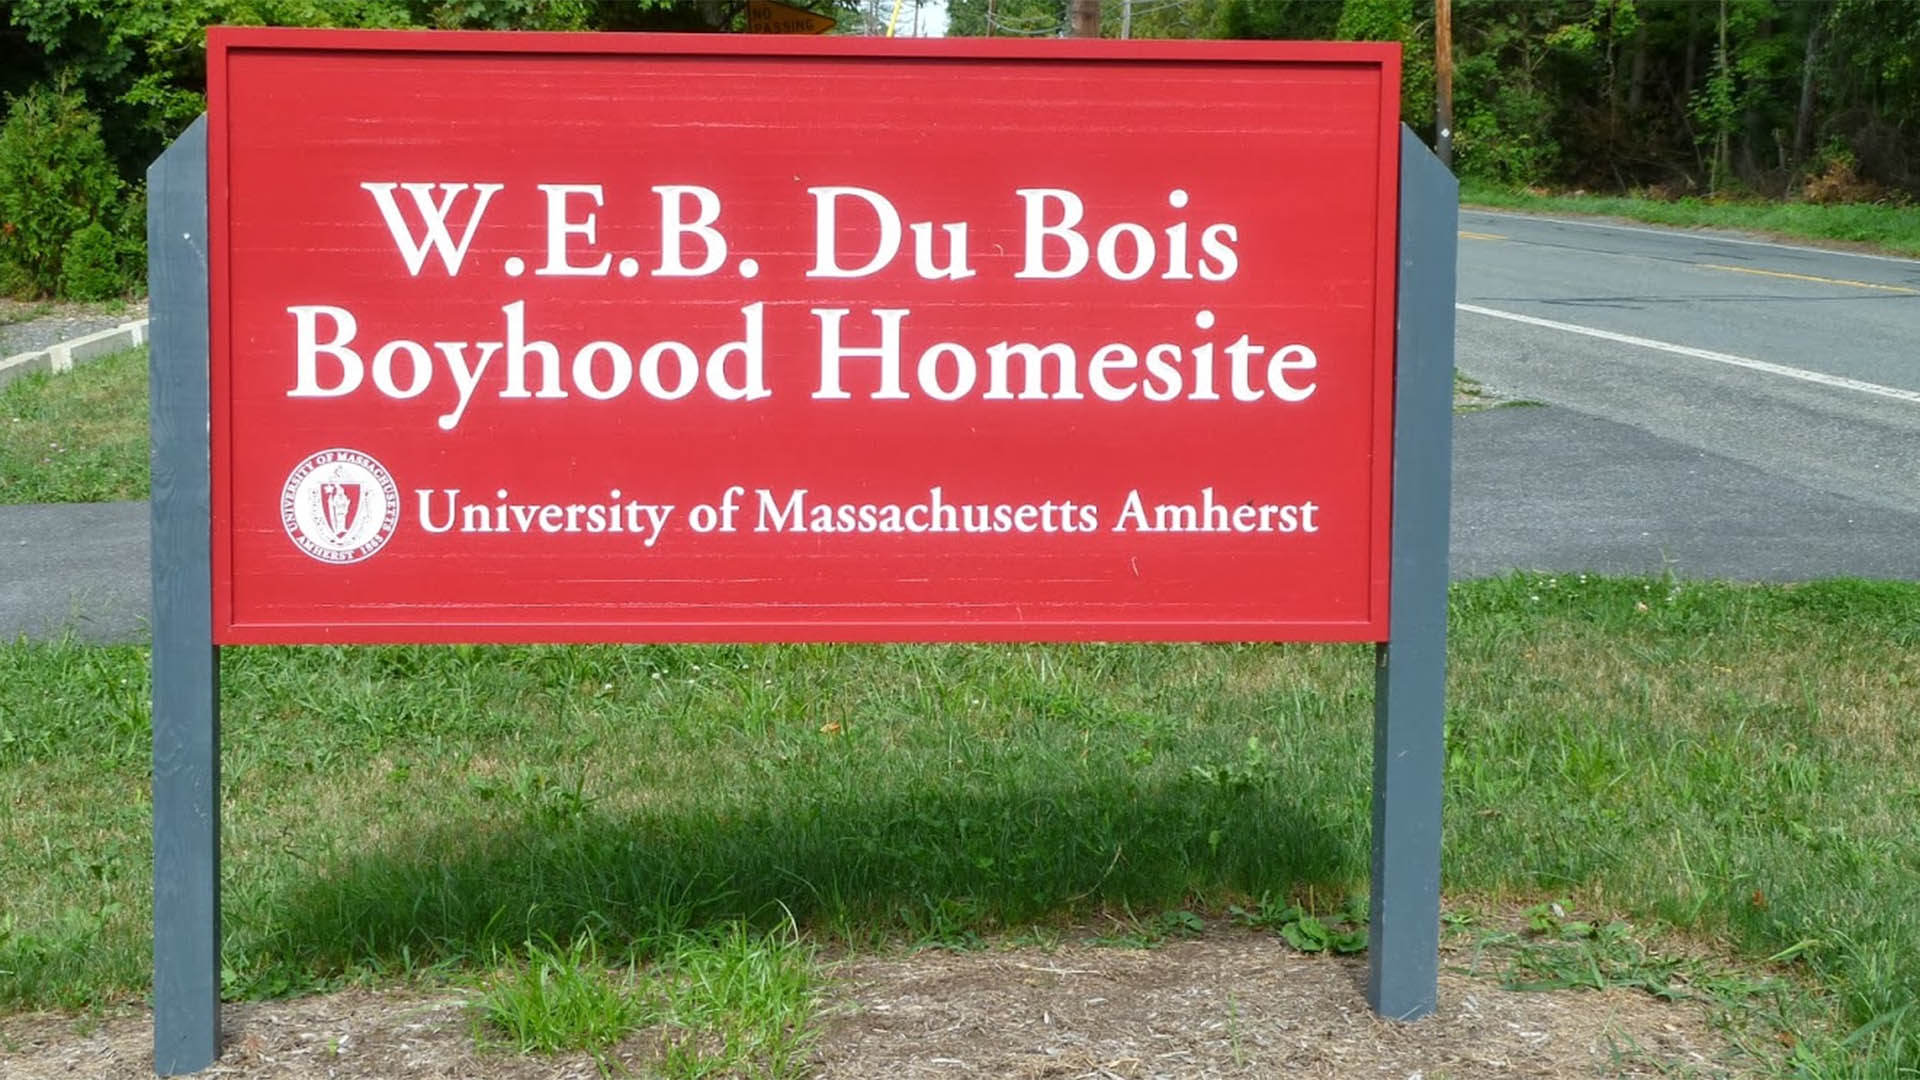 The W.E.B. Du Bois Homesite is Administered by the University of Massachusetts Amherst